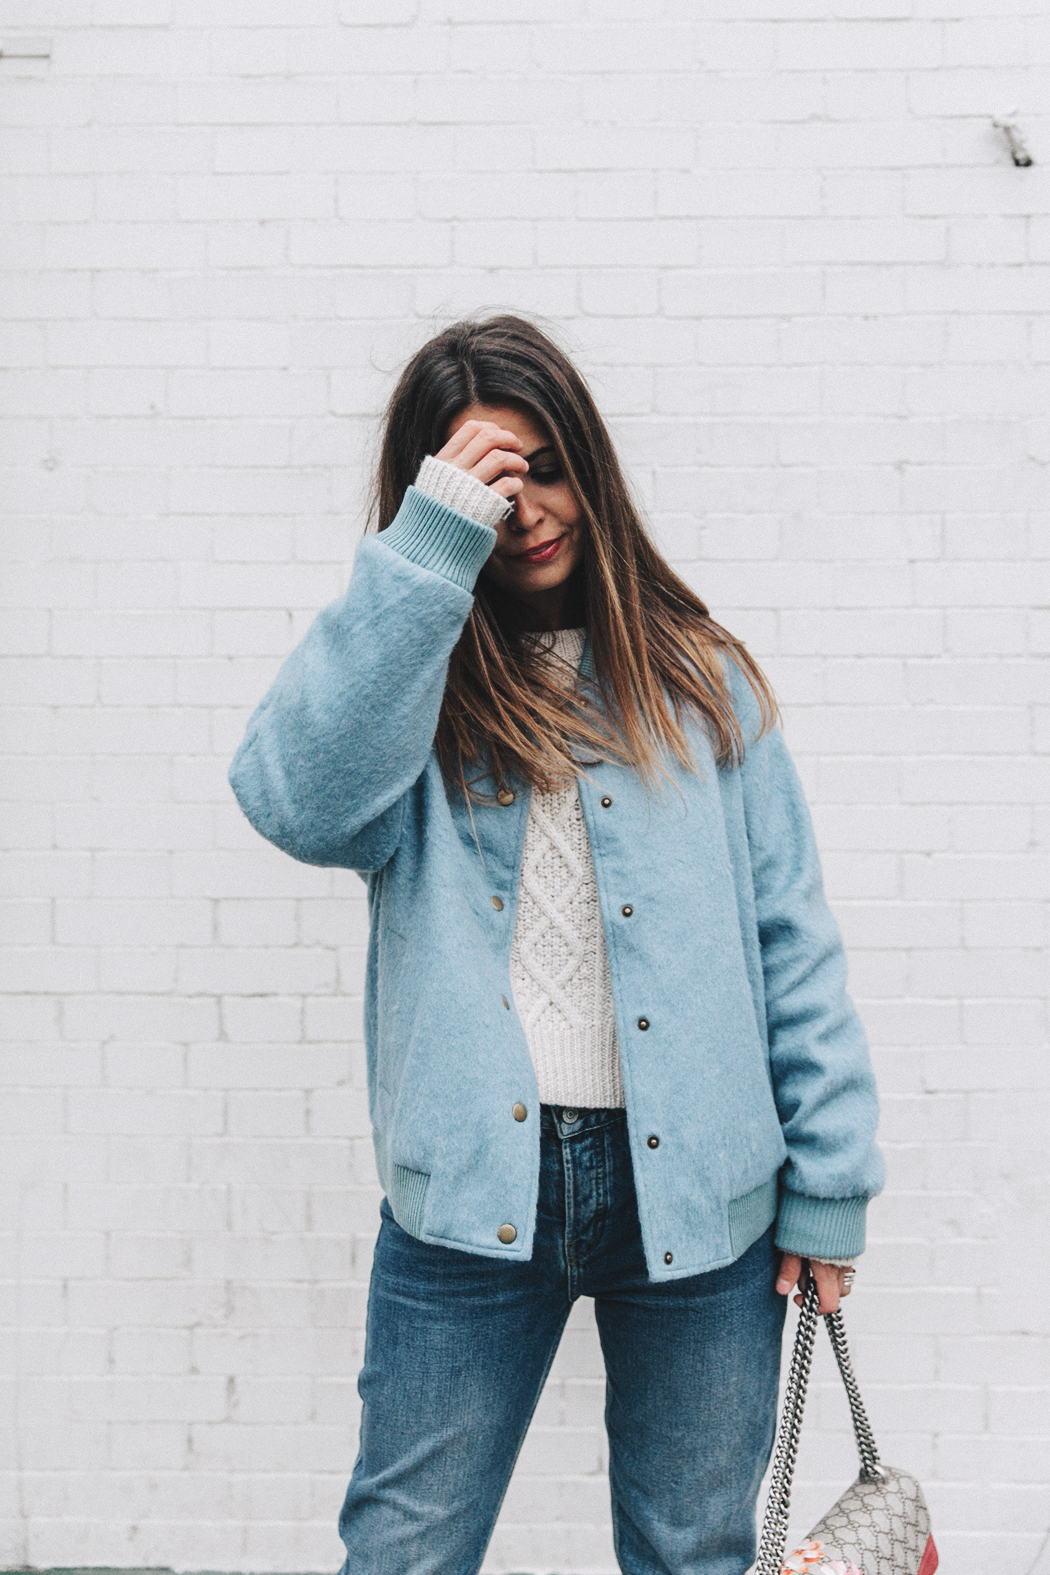 Blue_Bomber-Ganni-Topshop_Jeans-White_Boots-Gucci_Bag-Outfit-NYFW-New_York-Street_Style-21